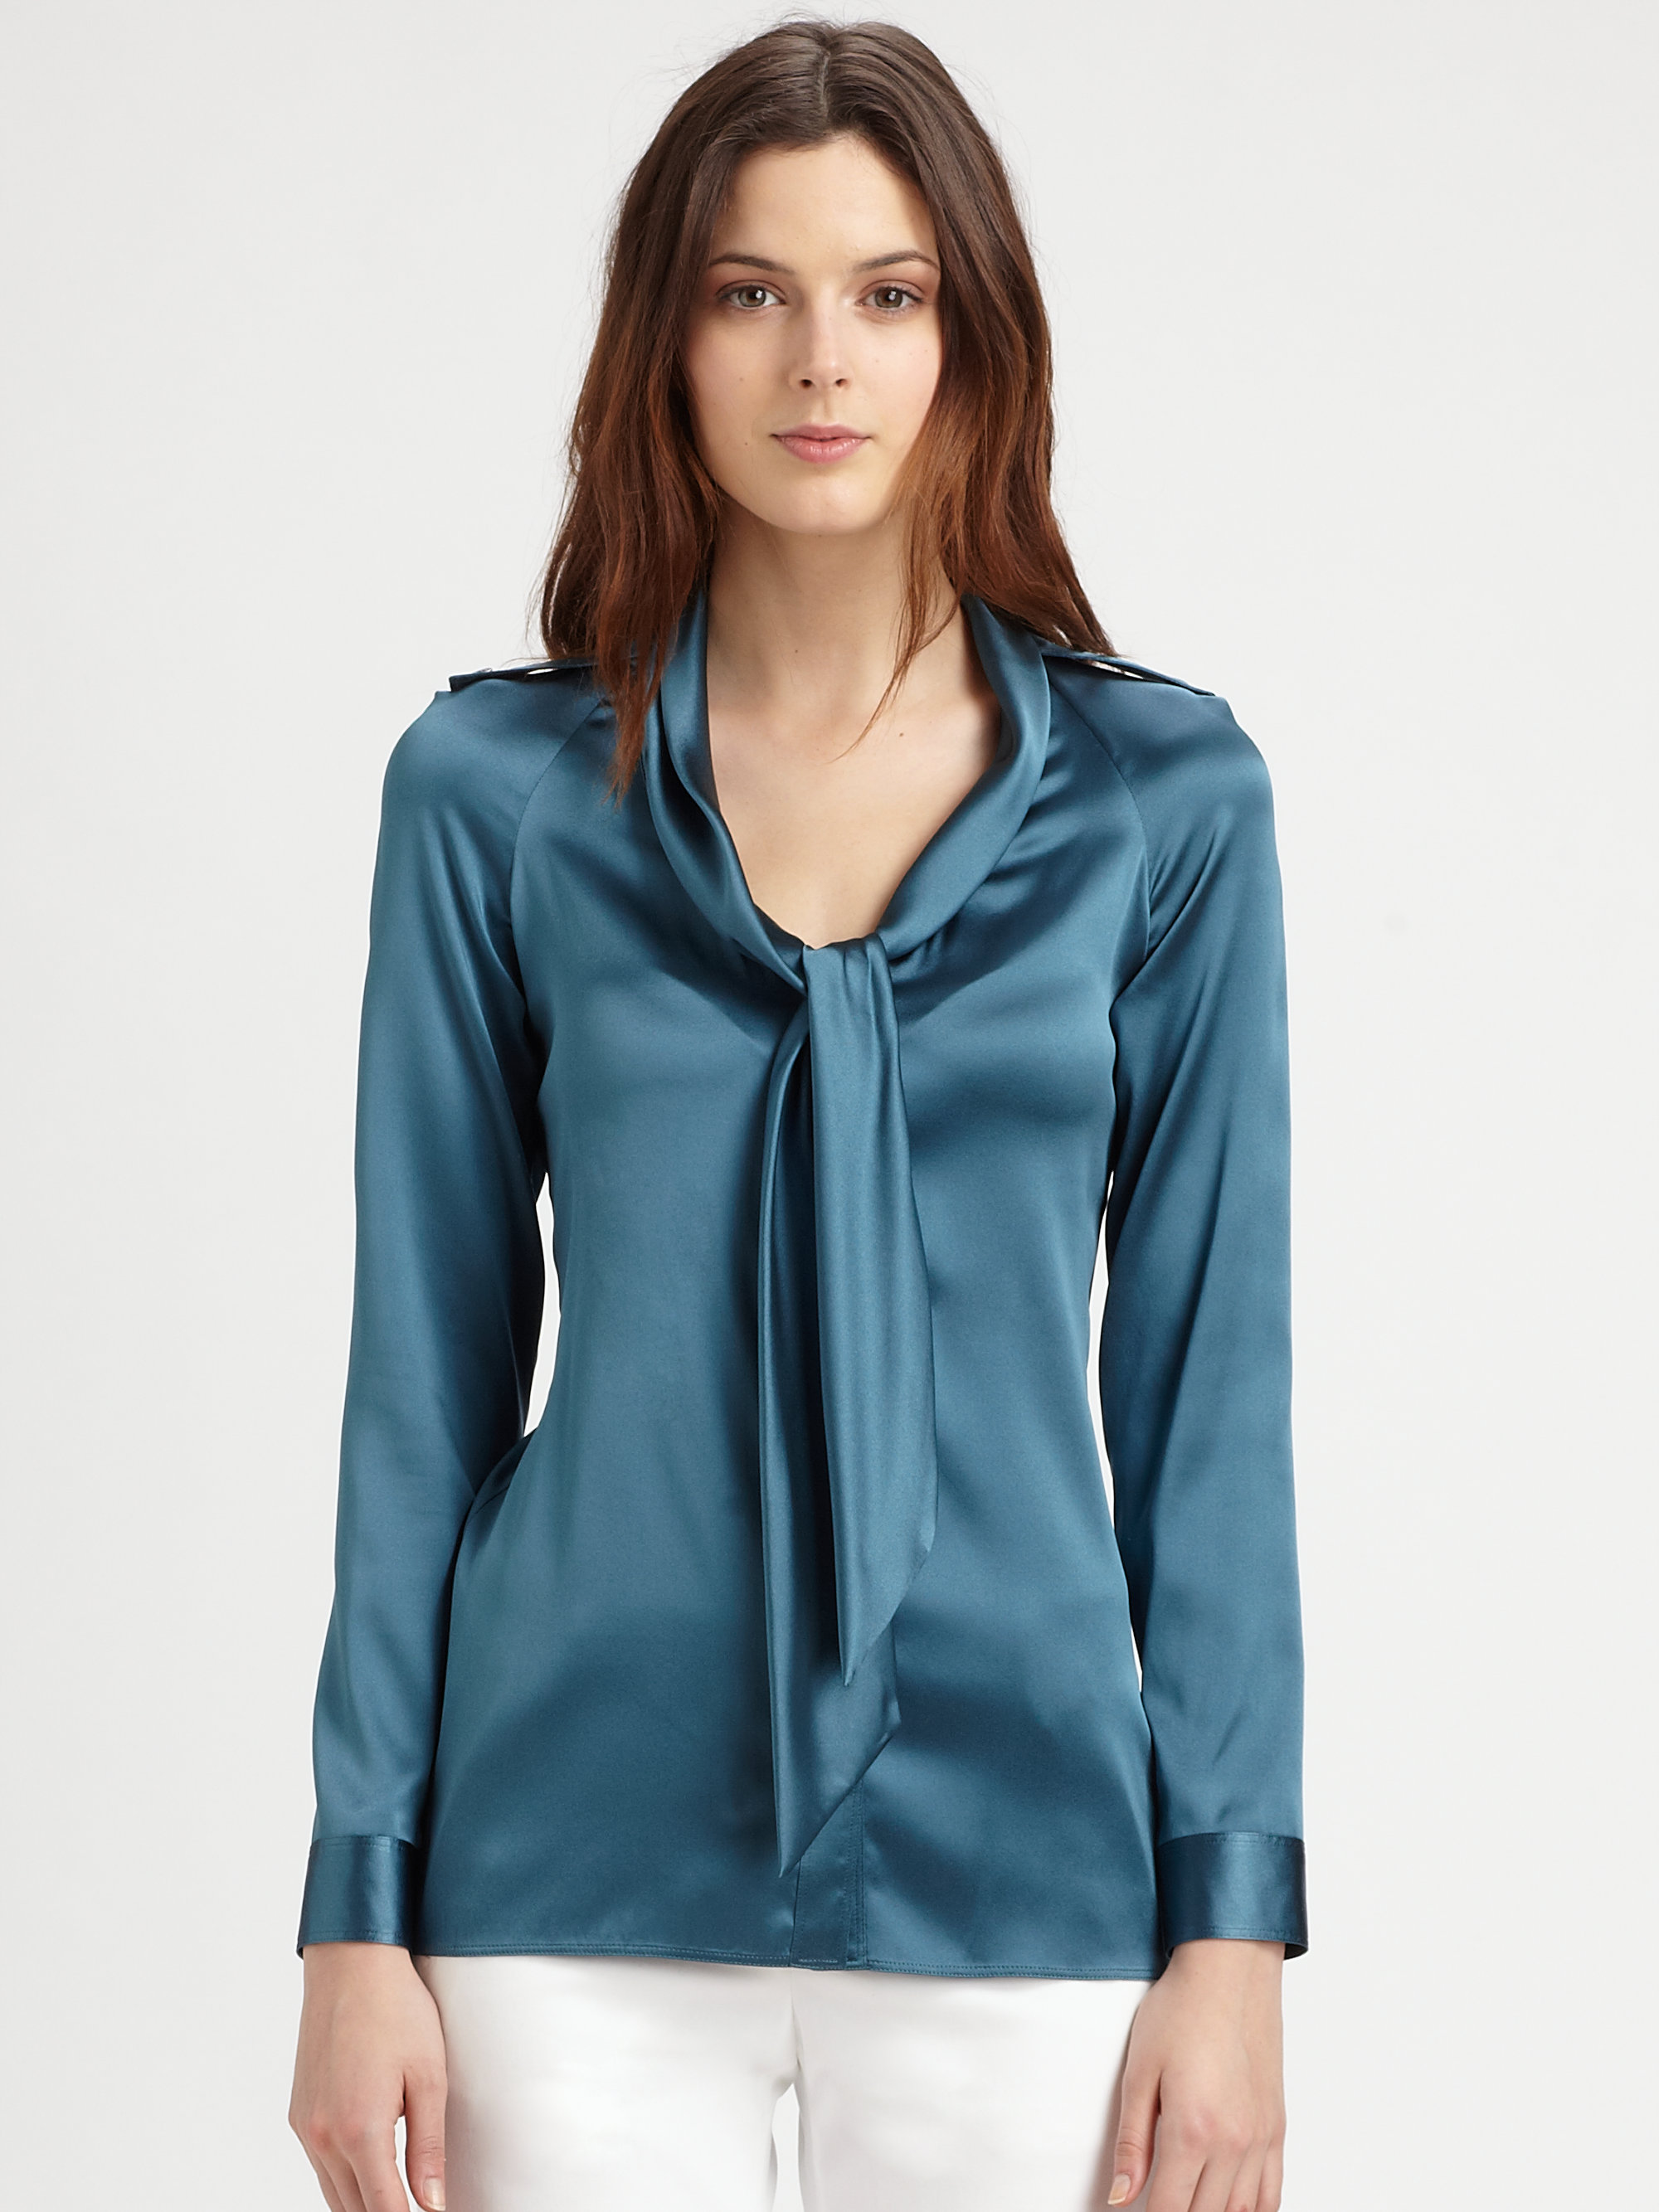 Best prices on Washable silk shirts women in Women's Shirts & Blouses online. Visit Bizrate to find the best deals on top brands. Read reviews on Clothing & Accessories merchants and buy with confidence.